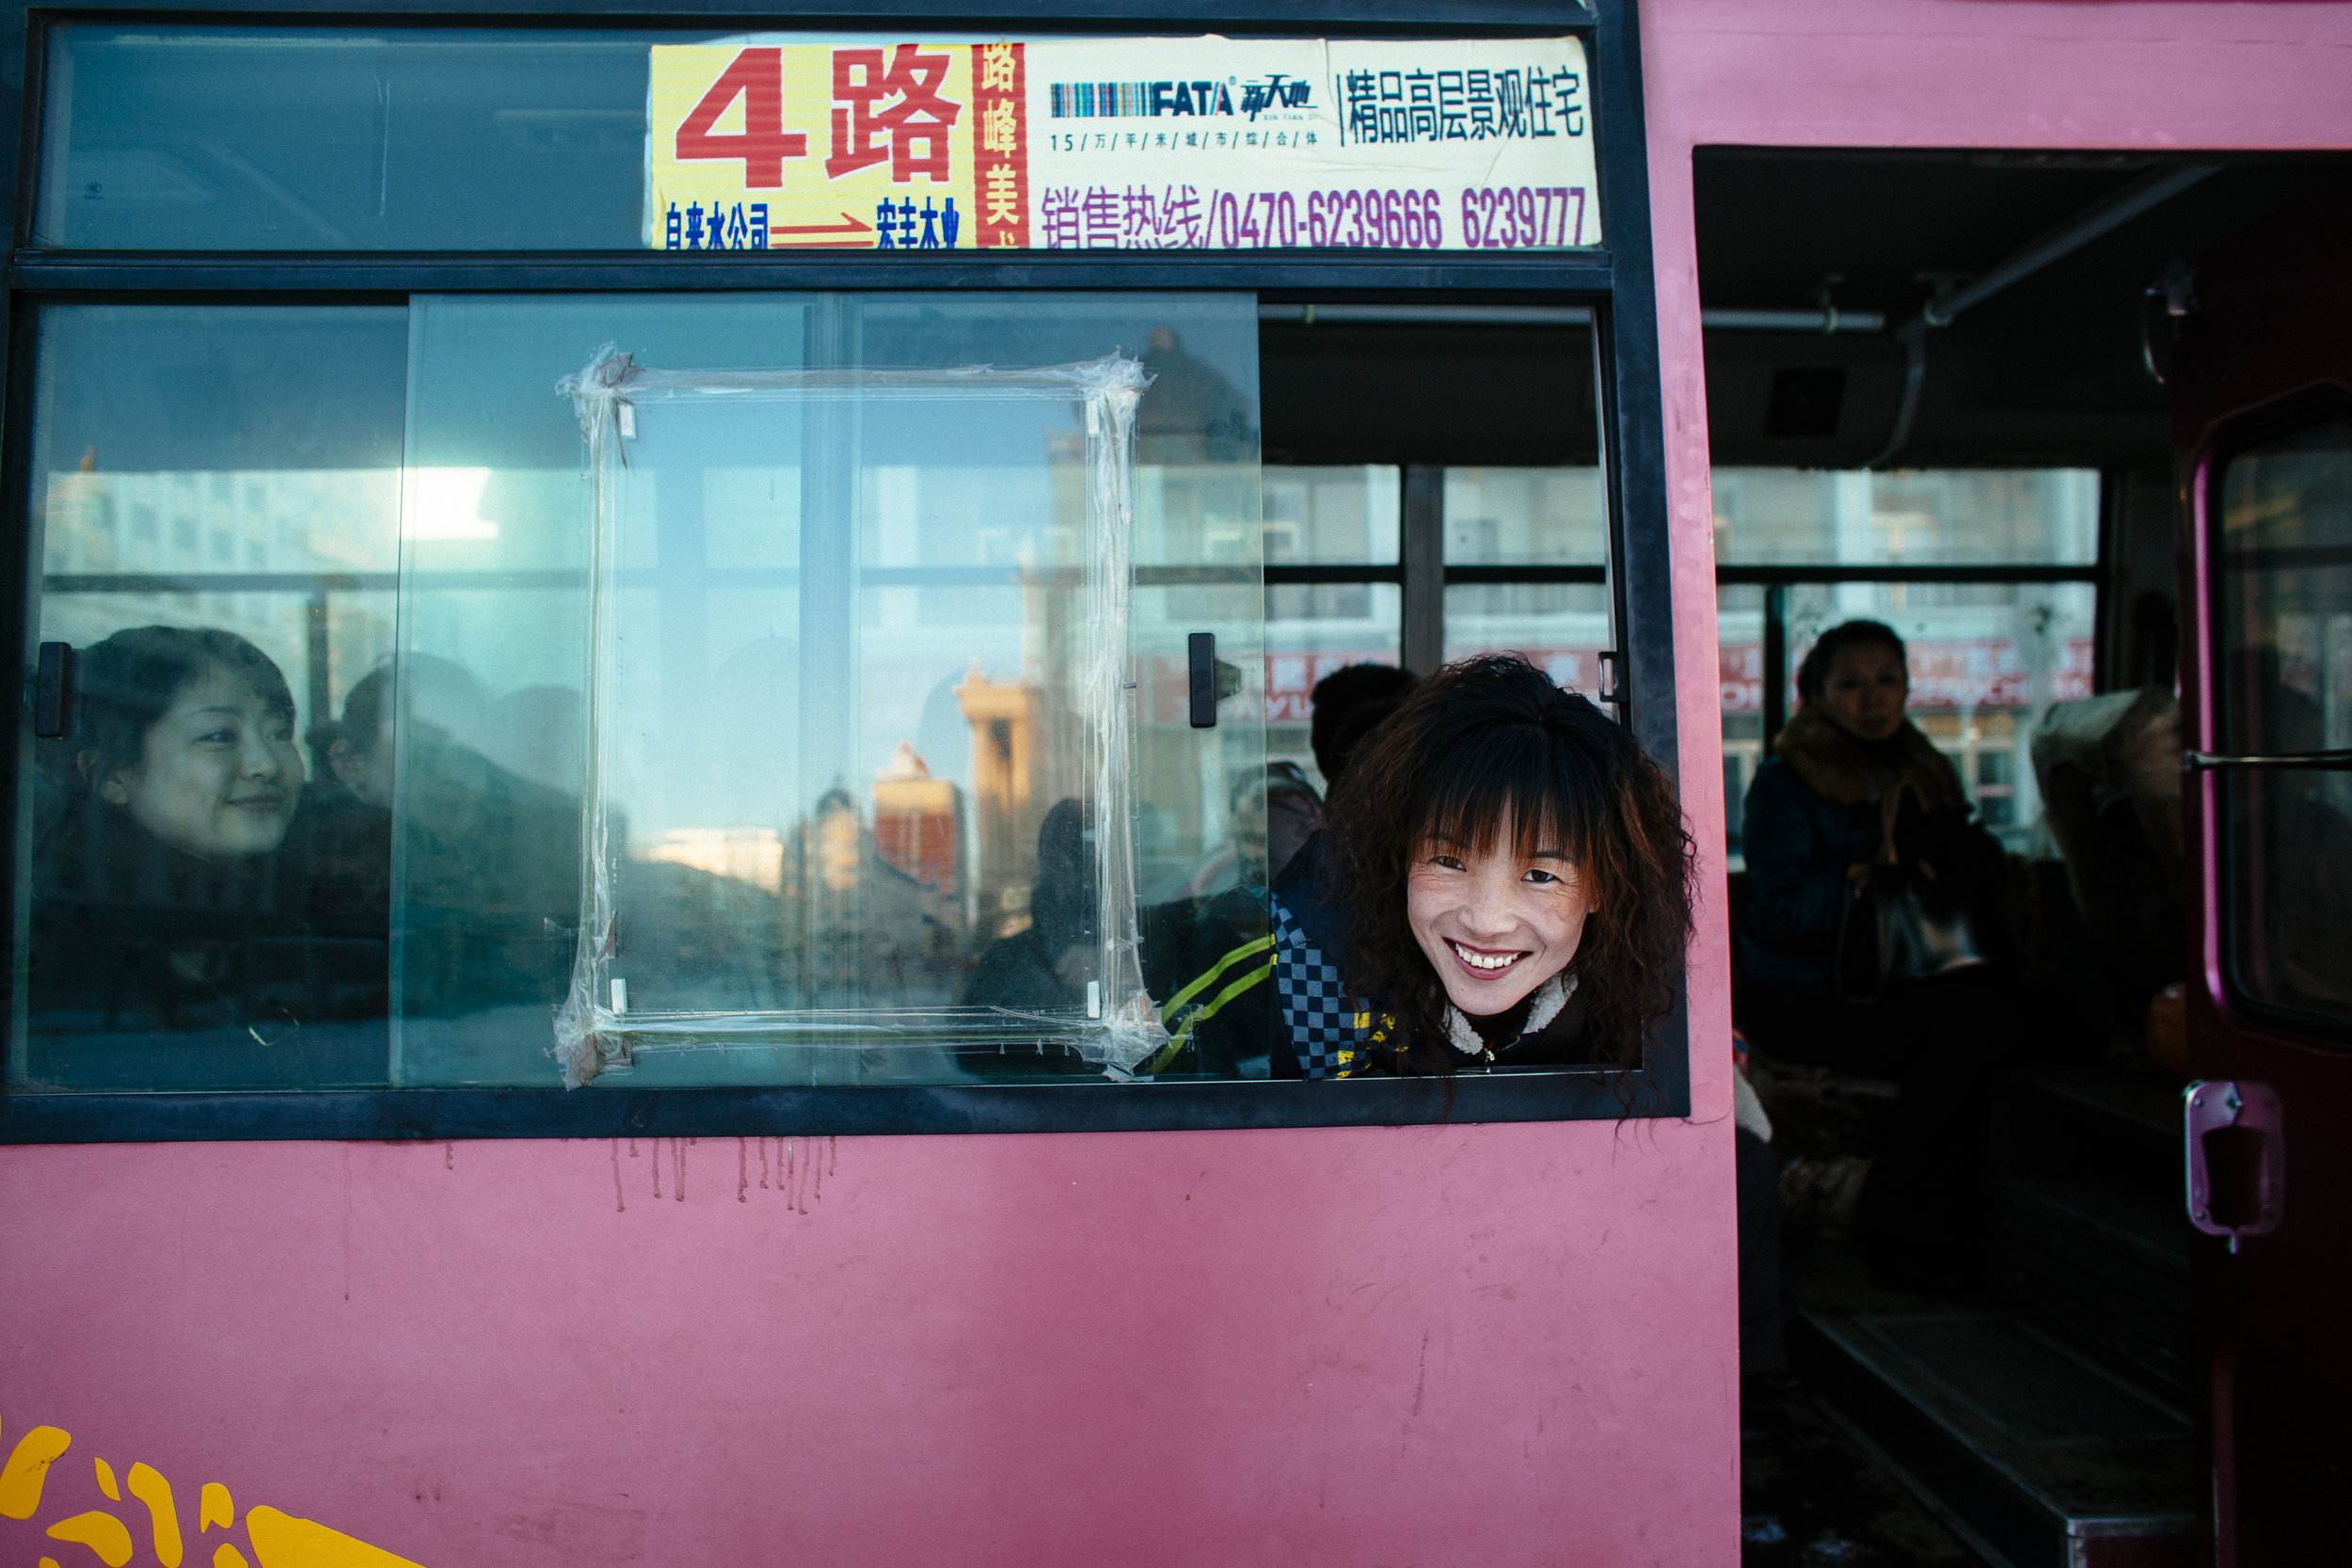 A woman calling for passengers on a bus smiles as she poses for a photograph in Manzhouli, Inner Mongolia, China, Saturday, March 21, 2009.